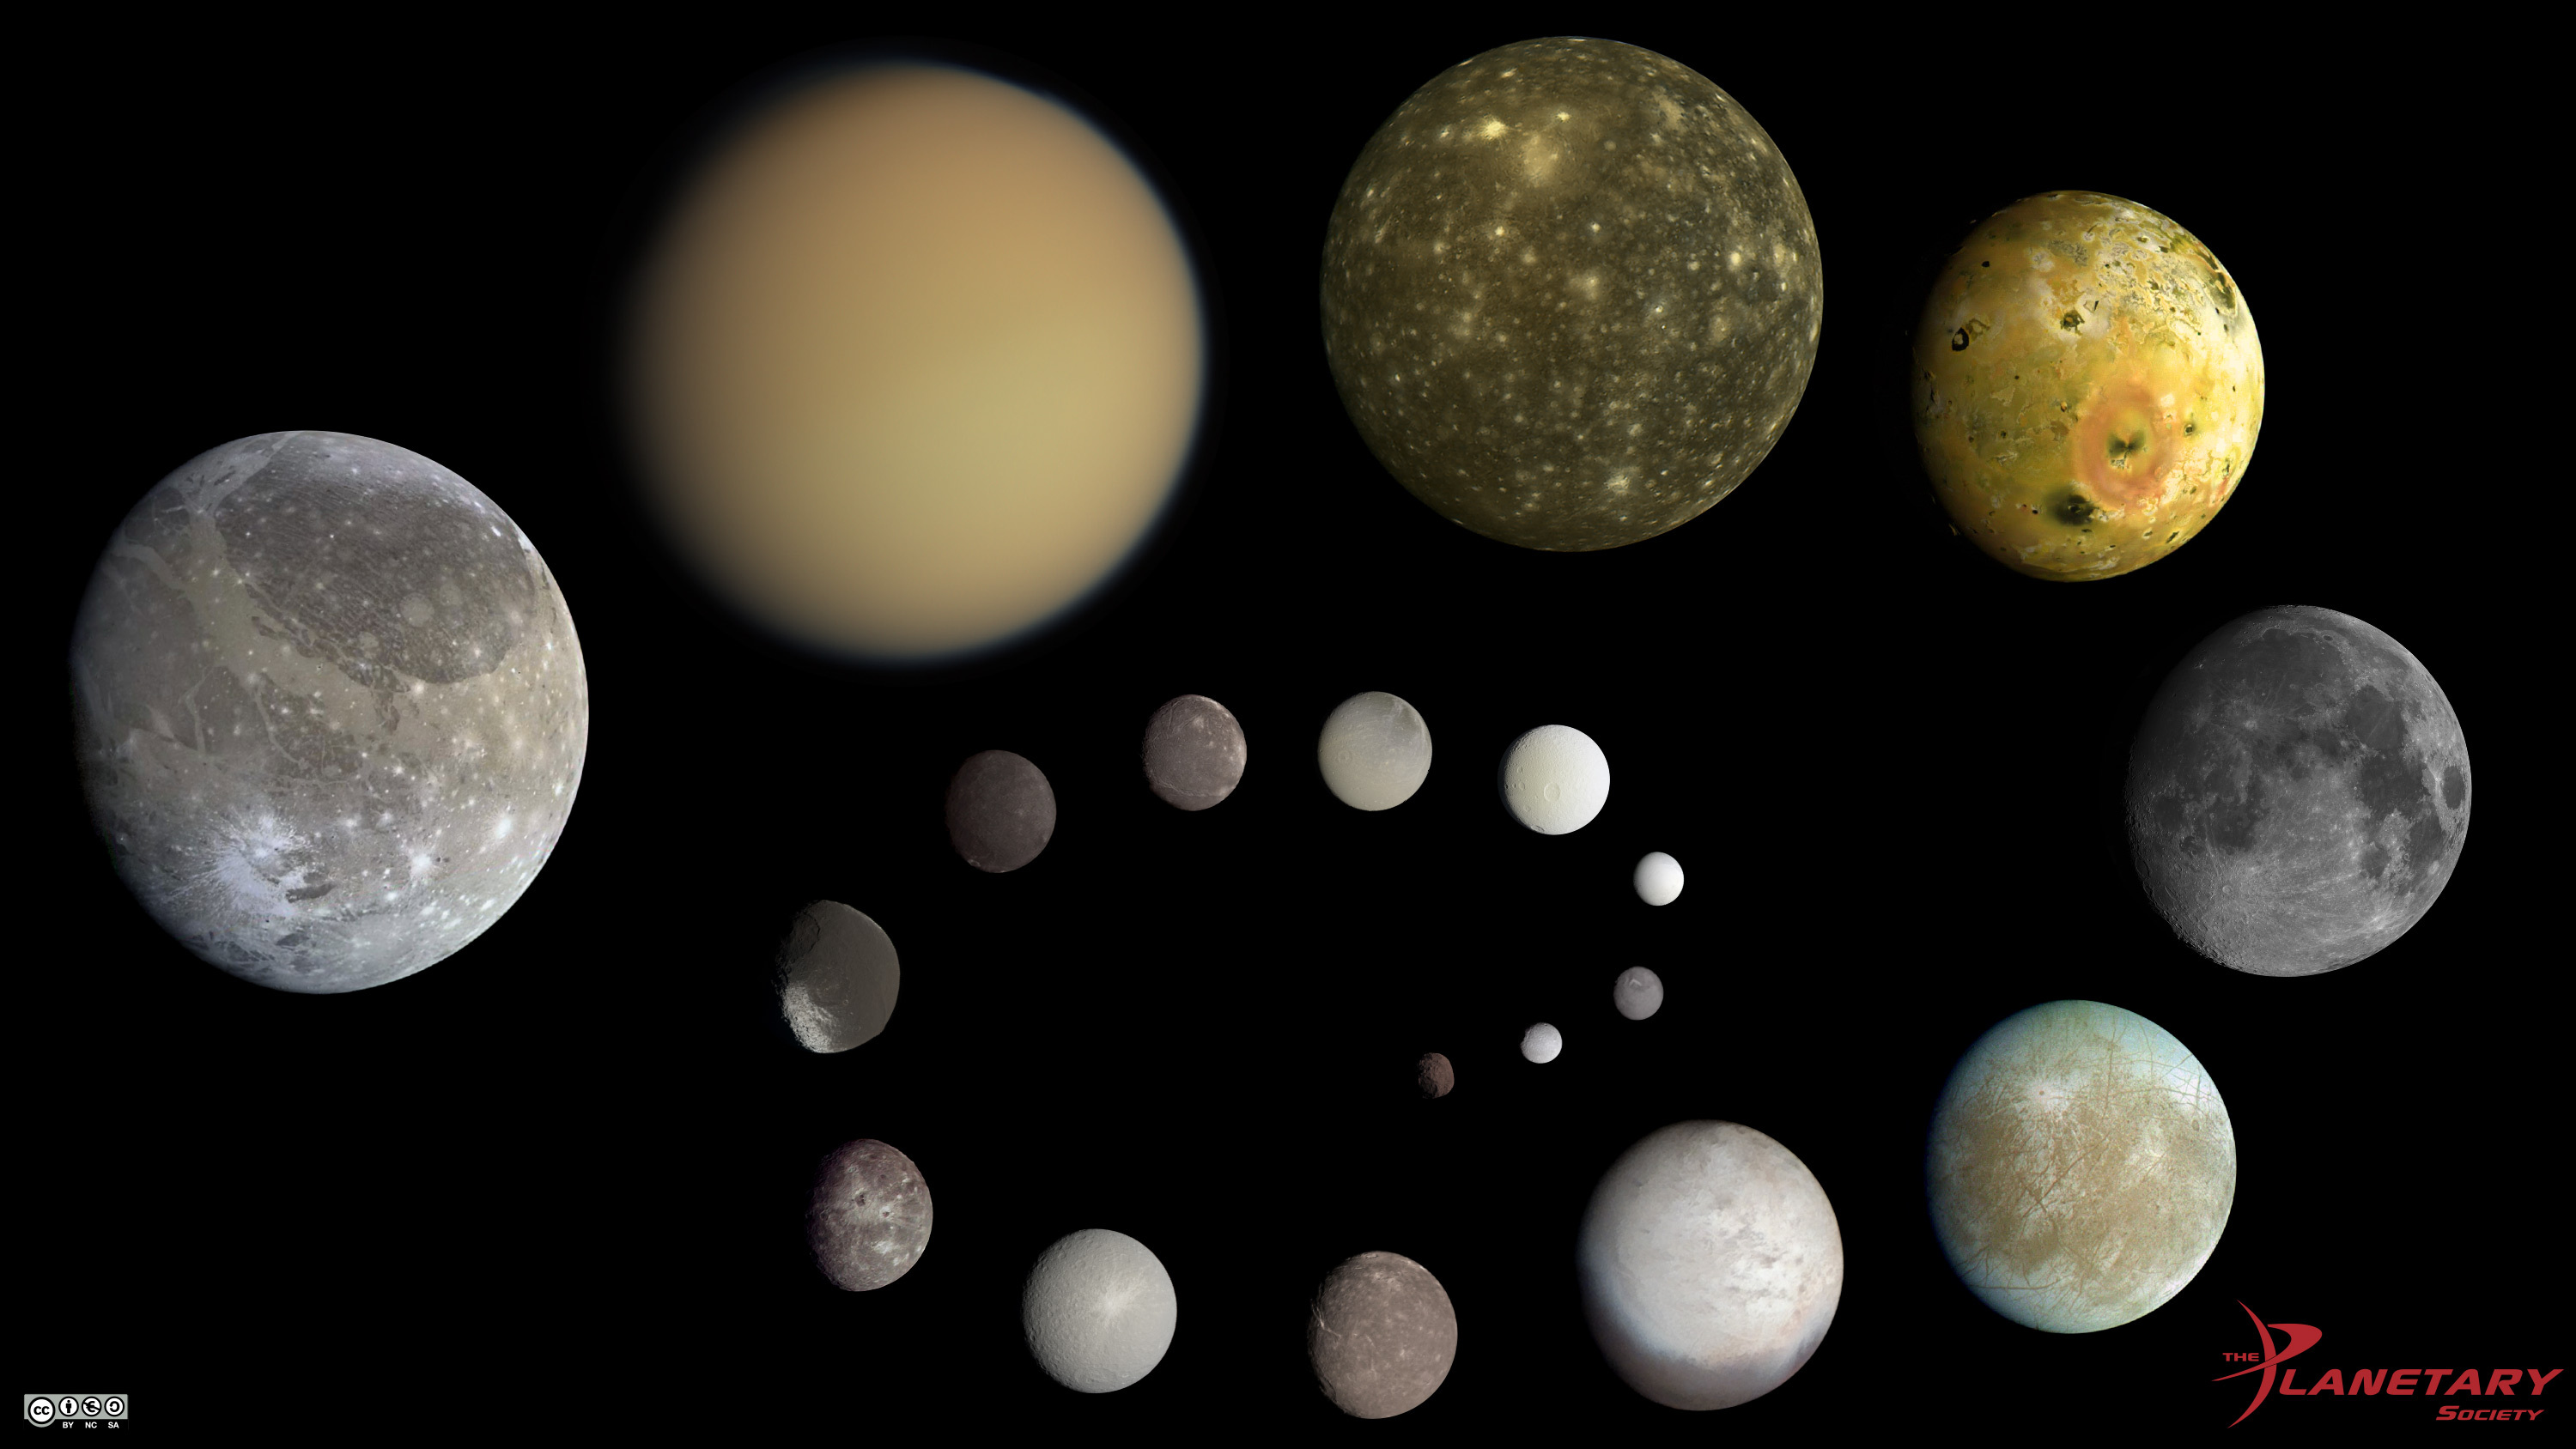 planets moons labeled - photo #15